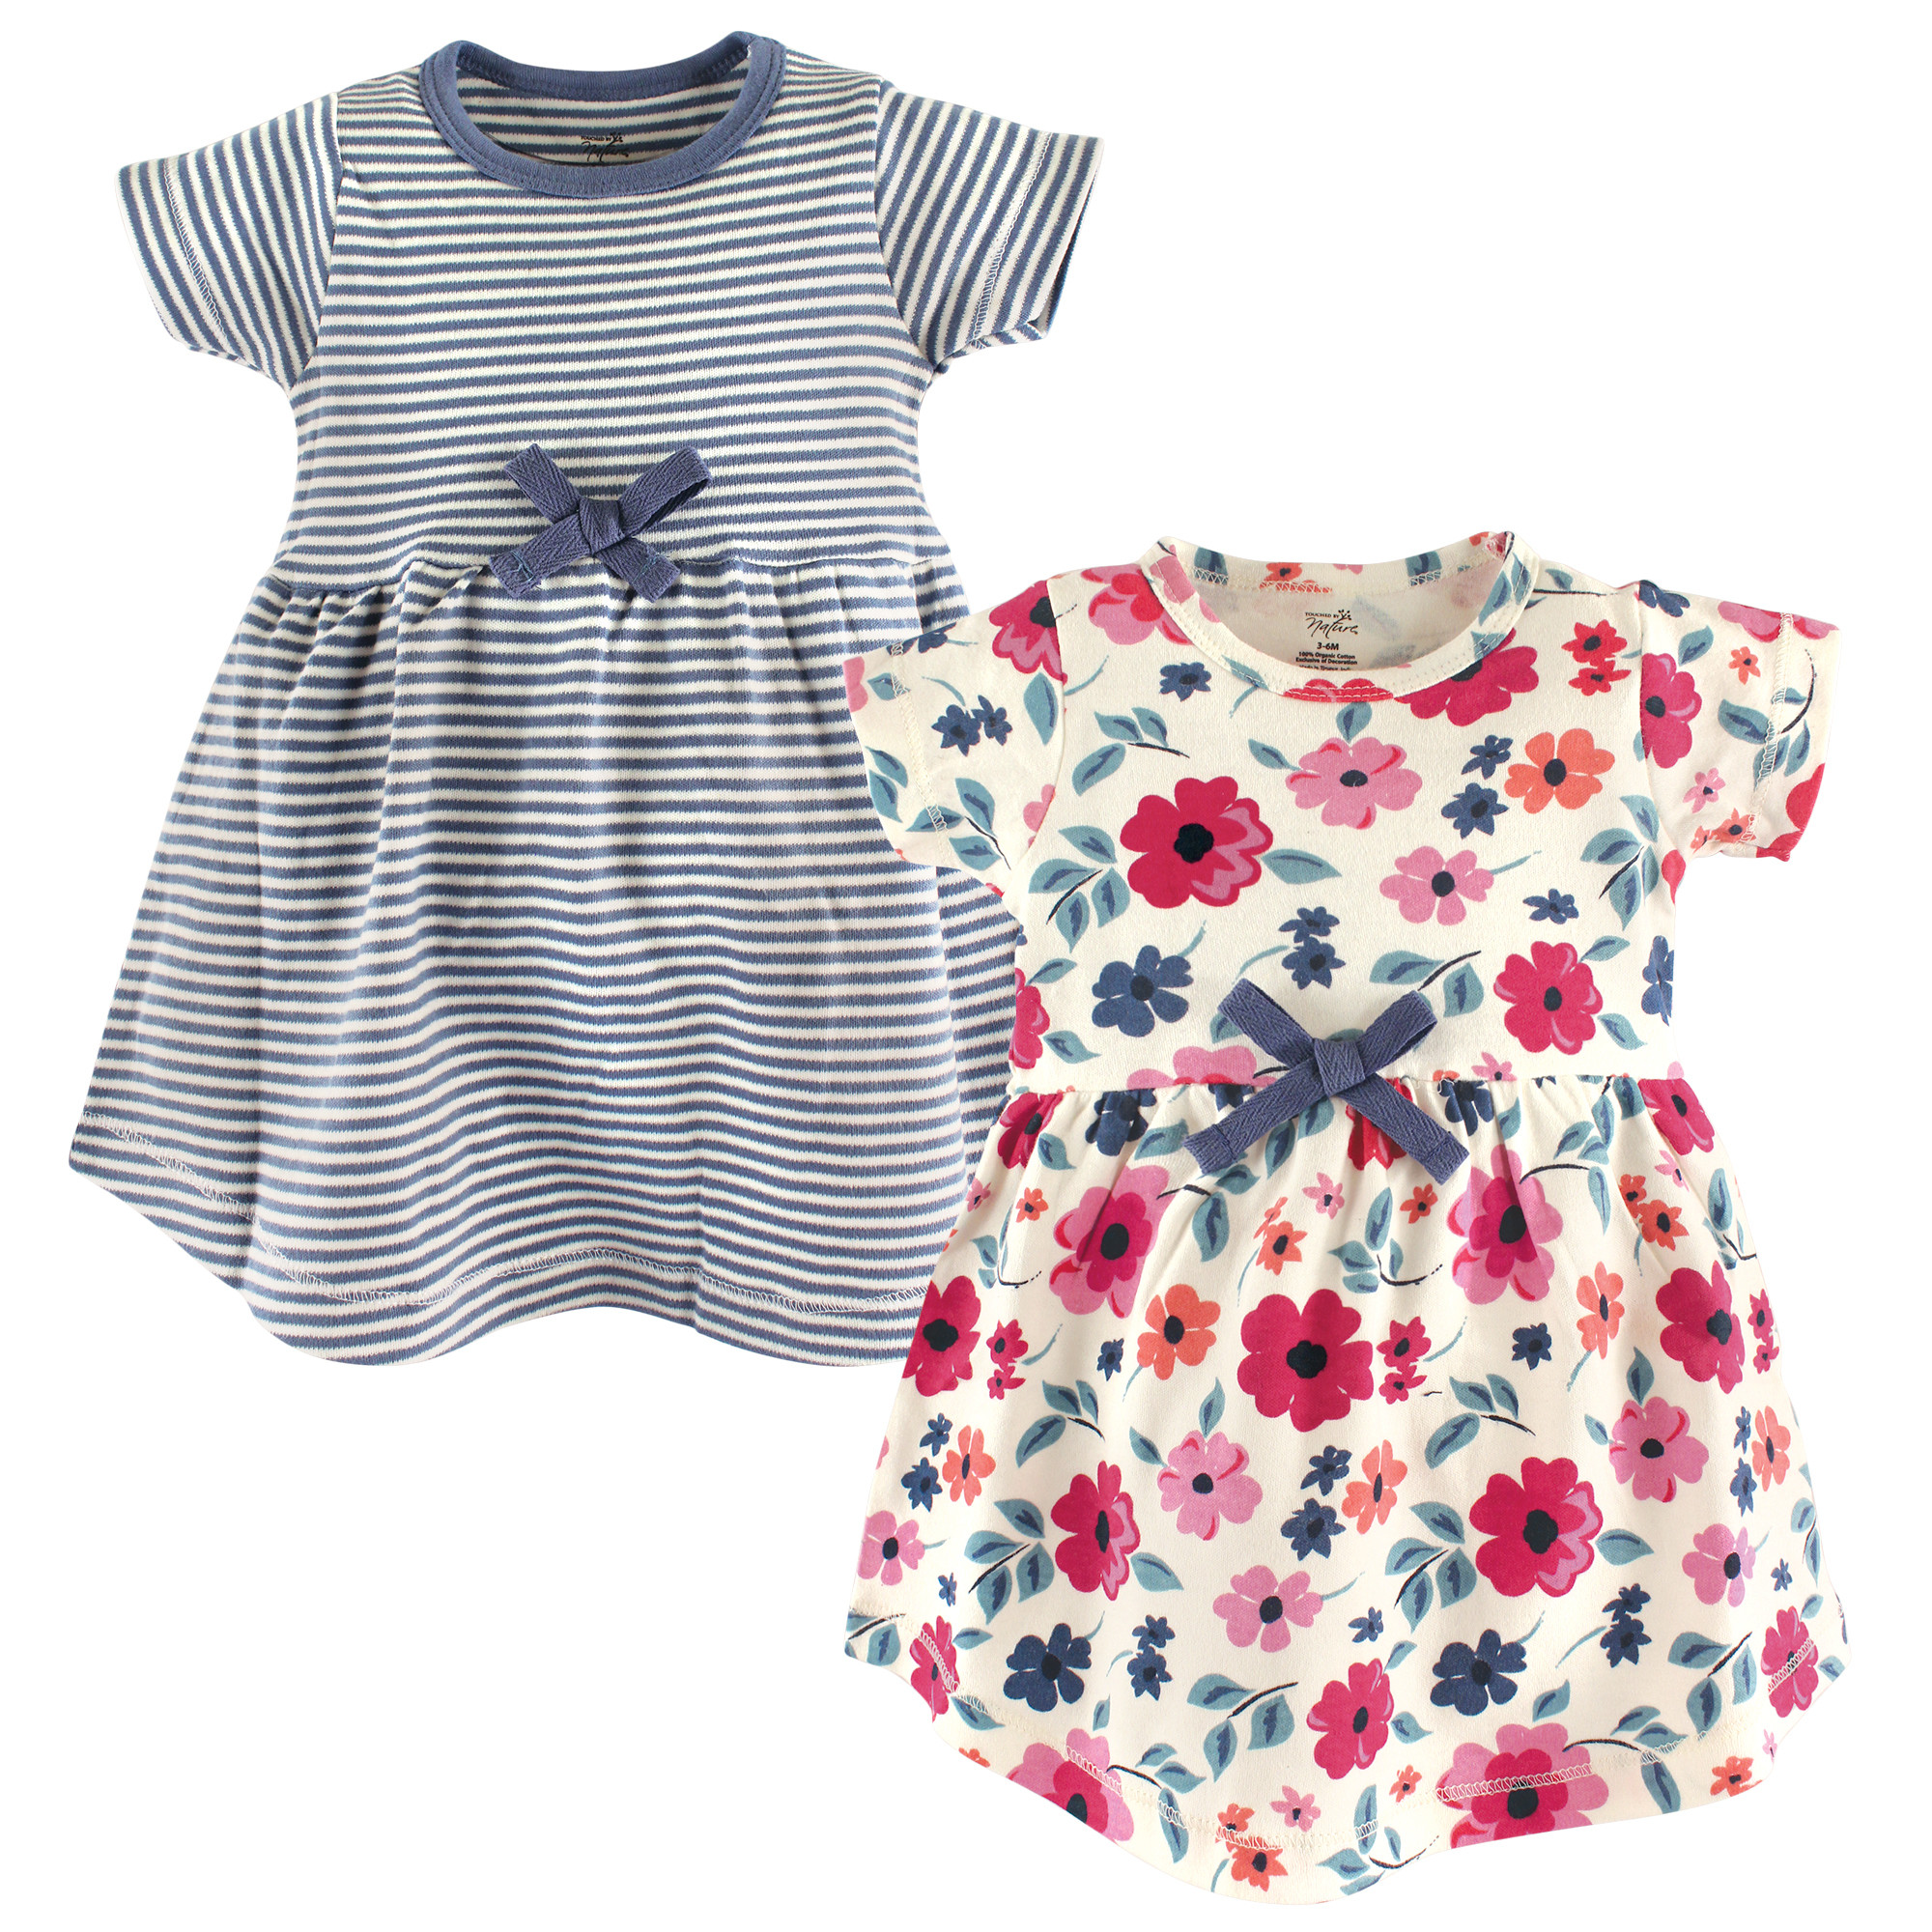 Touched By Nature Baby Organic Cotton Dress 2 Pack Affordable